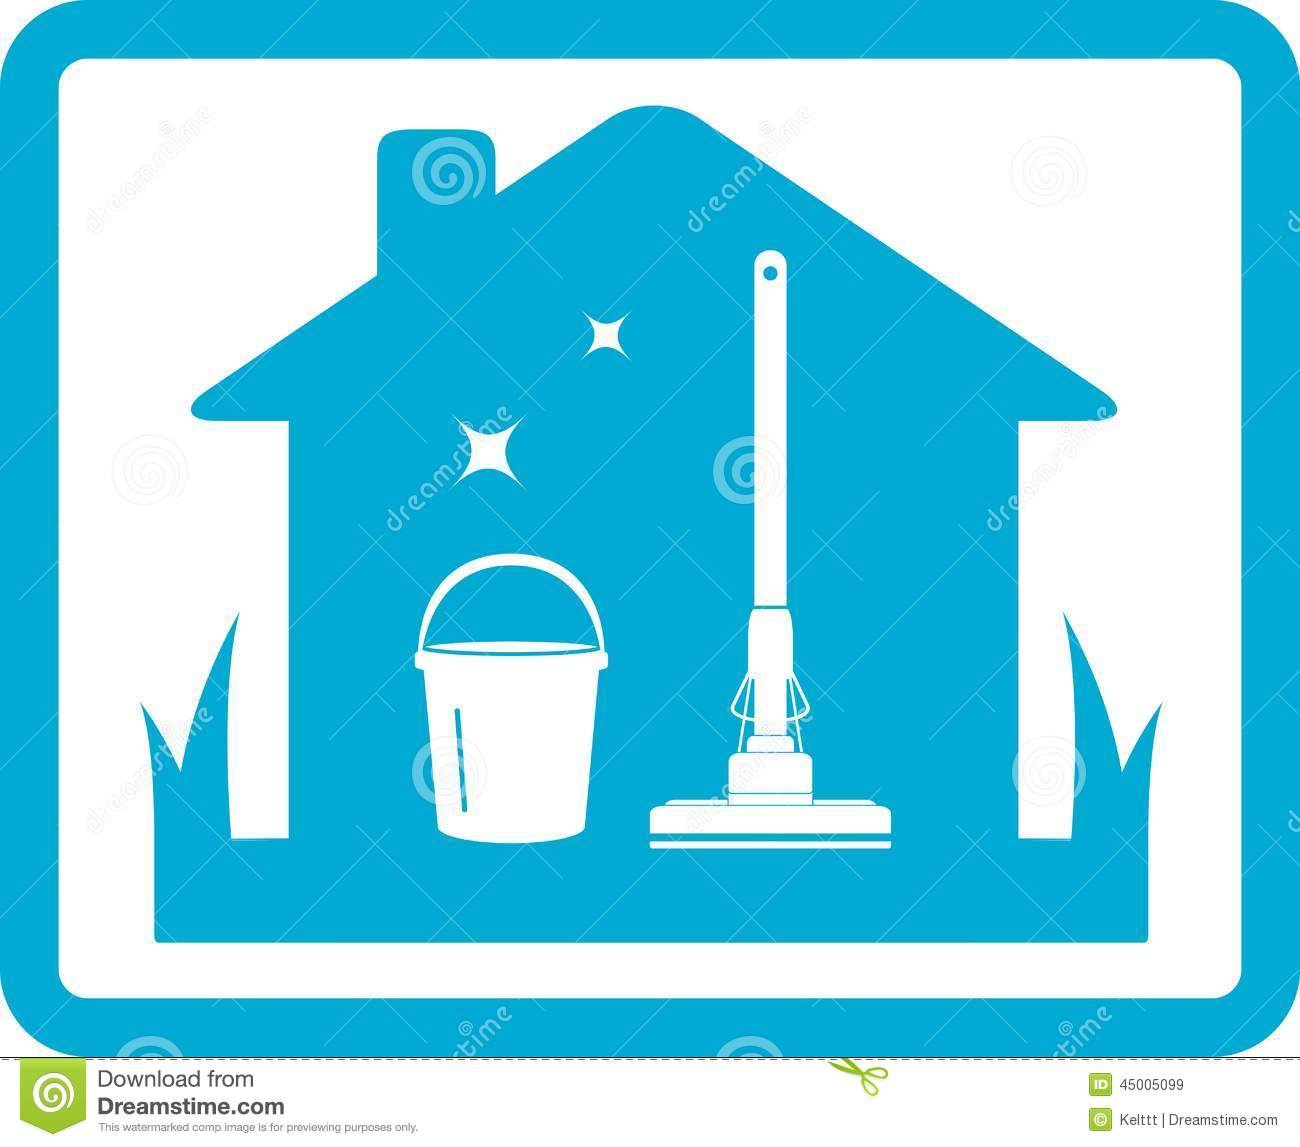 cleaning home icon isolated blue frame 45005099